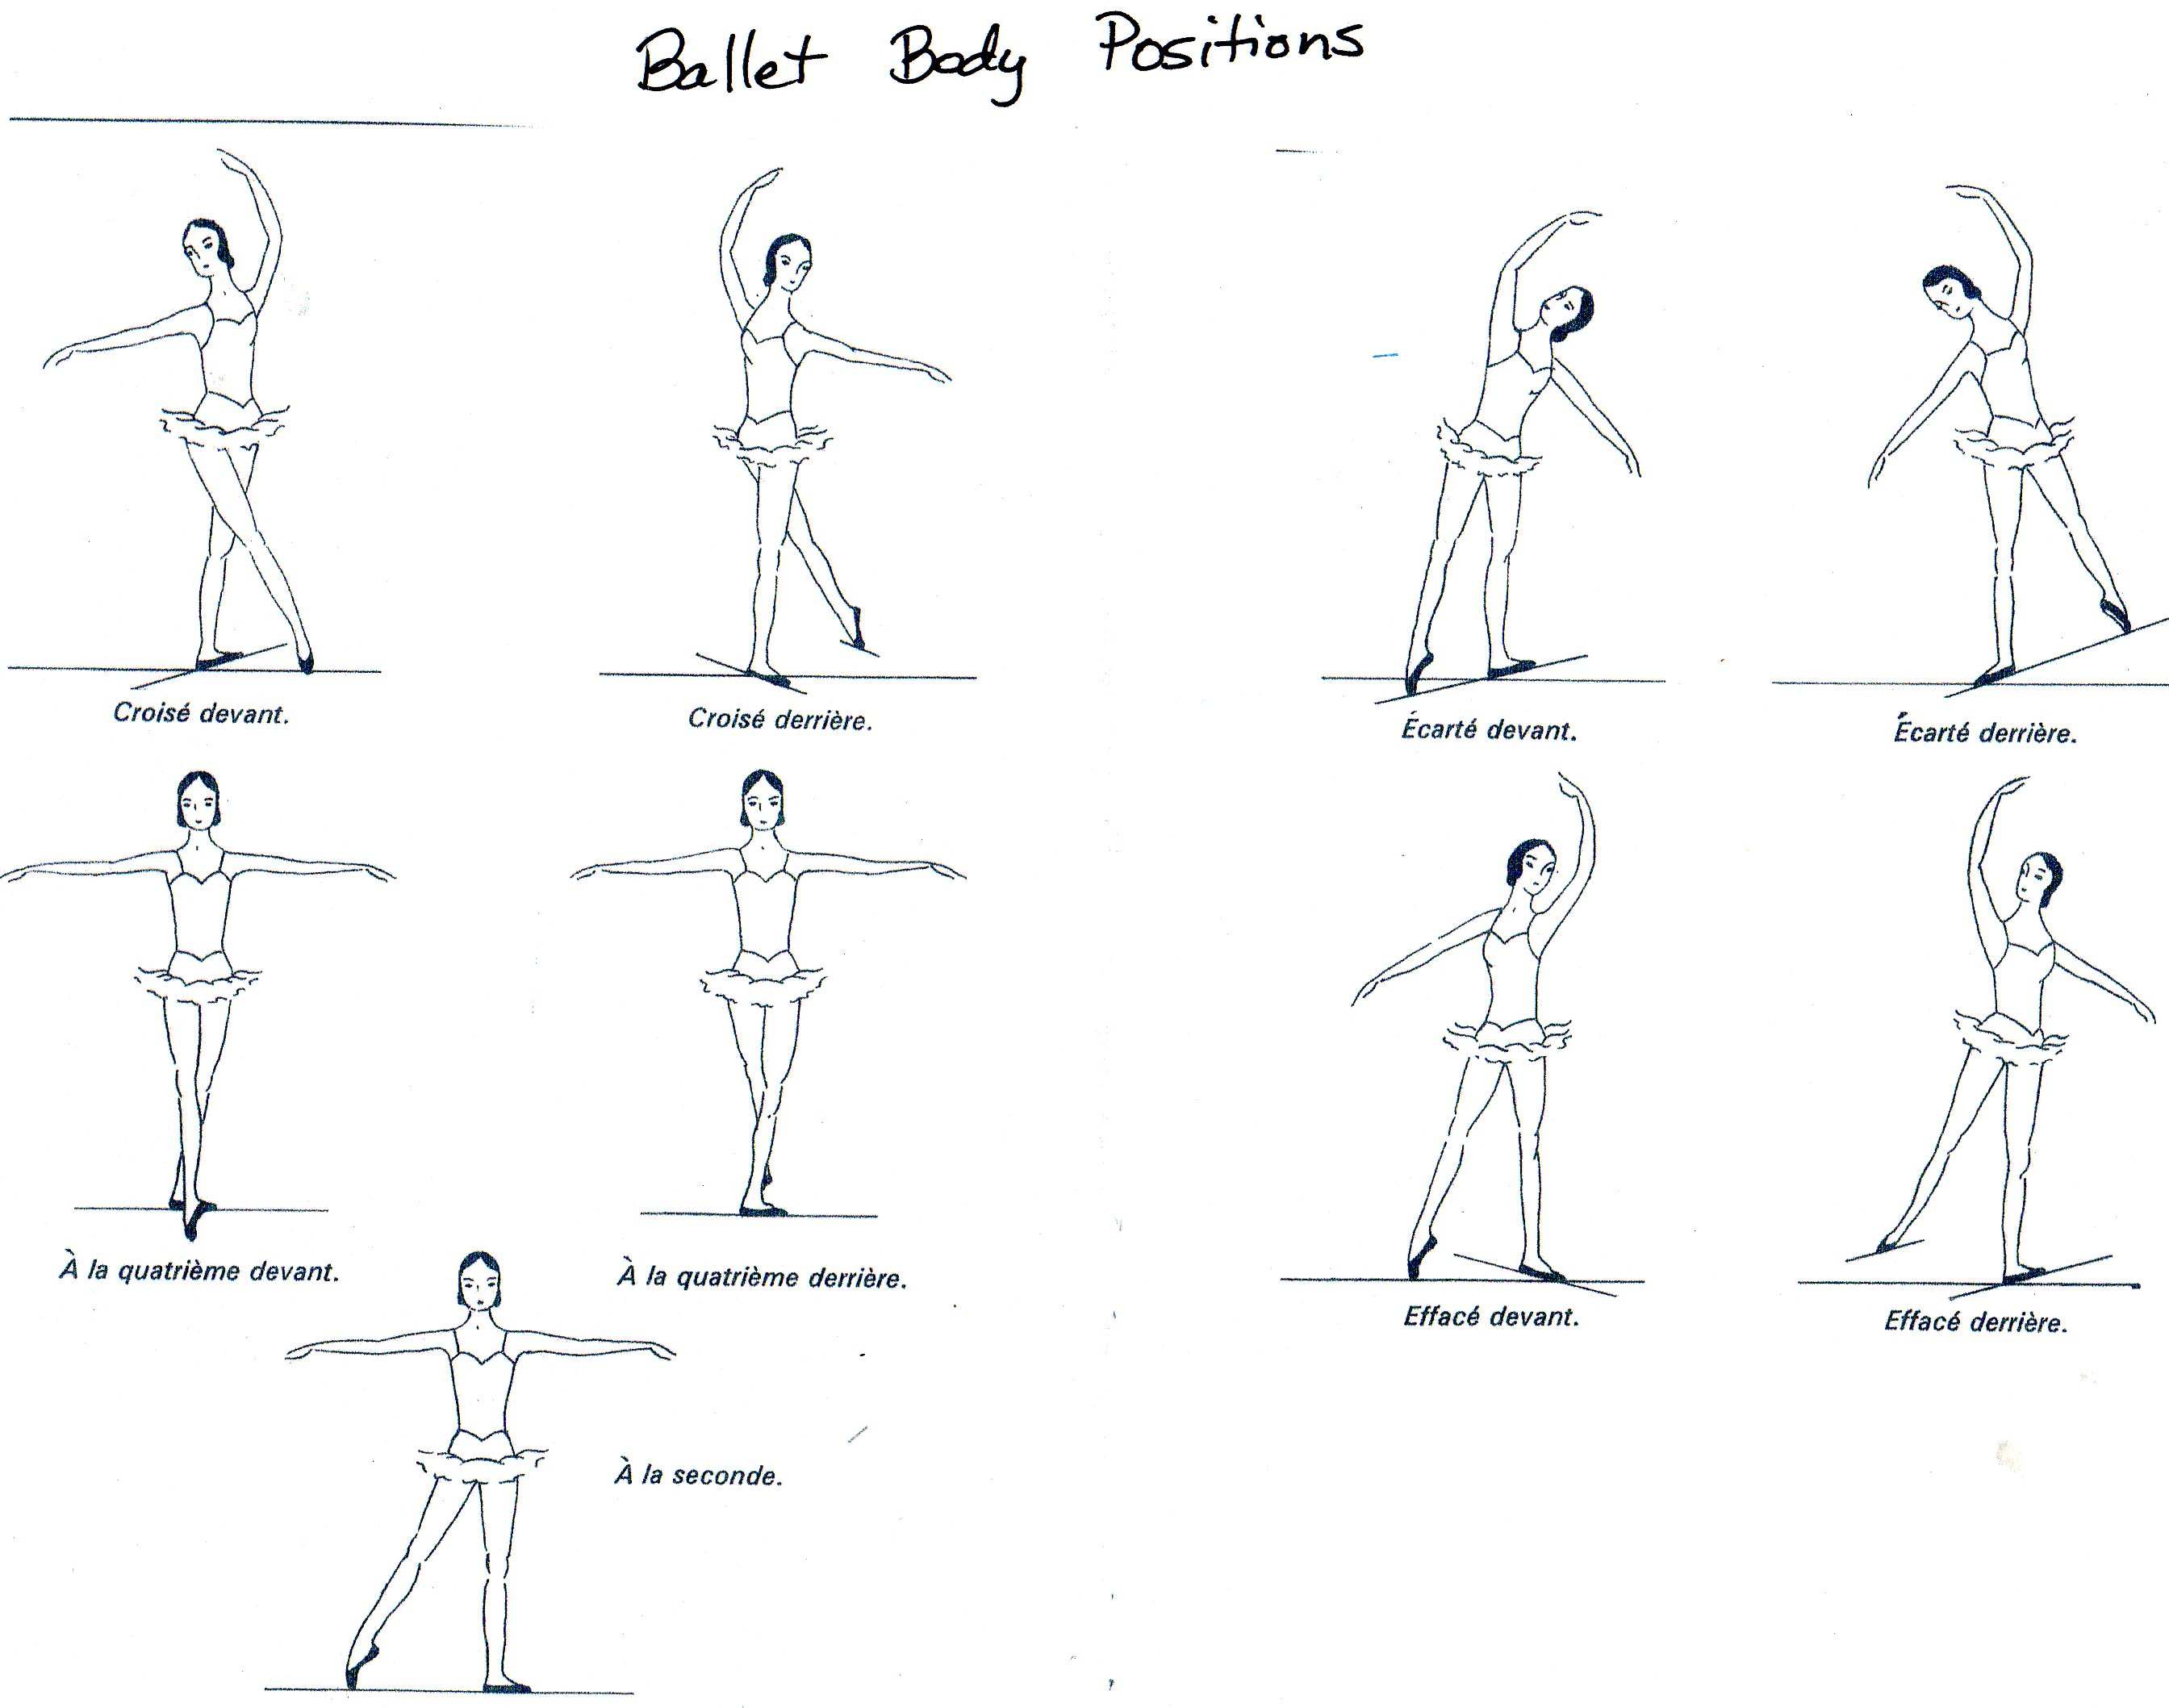 Ballet Body Positions Labeled